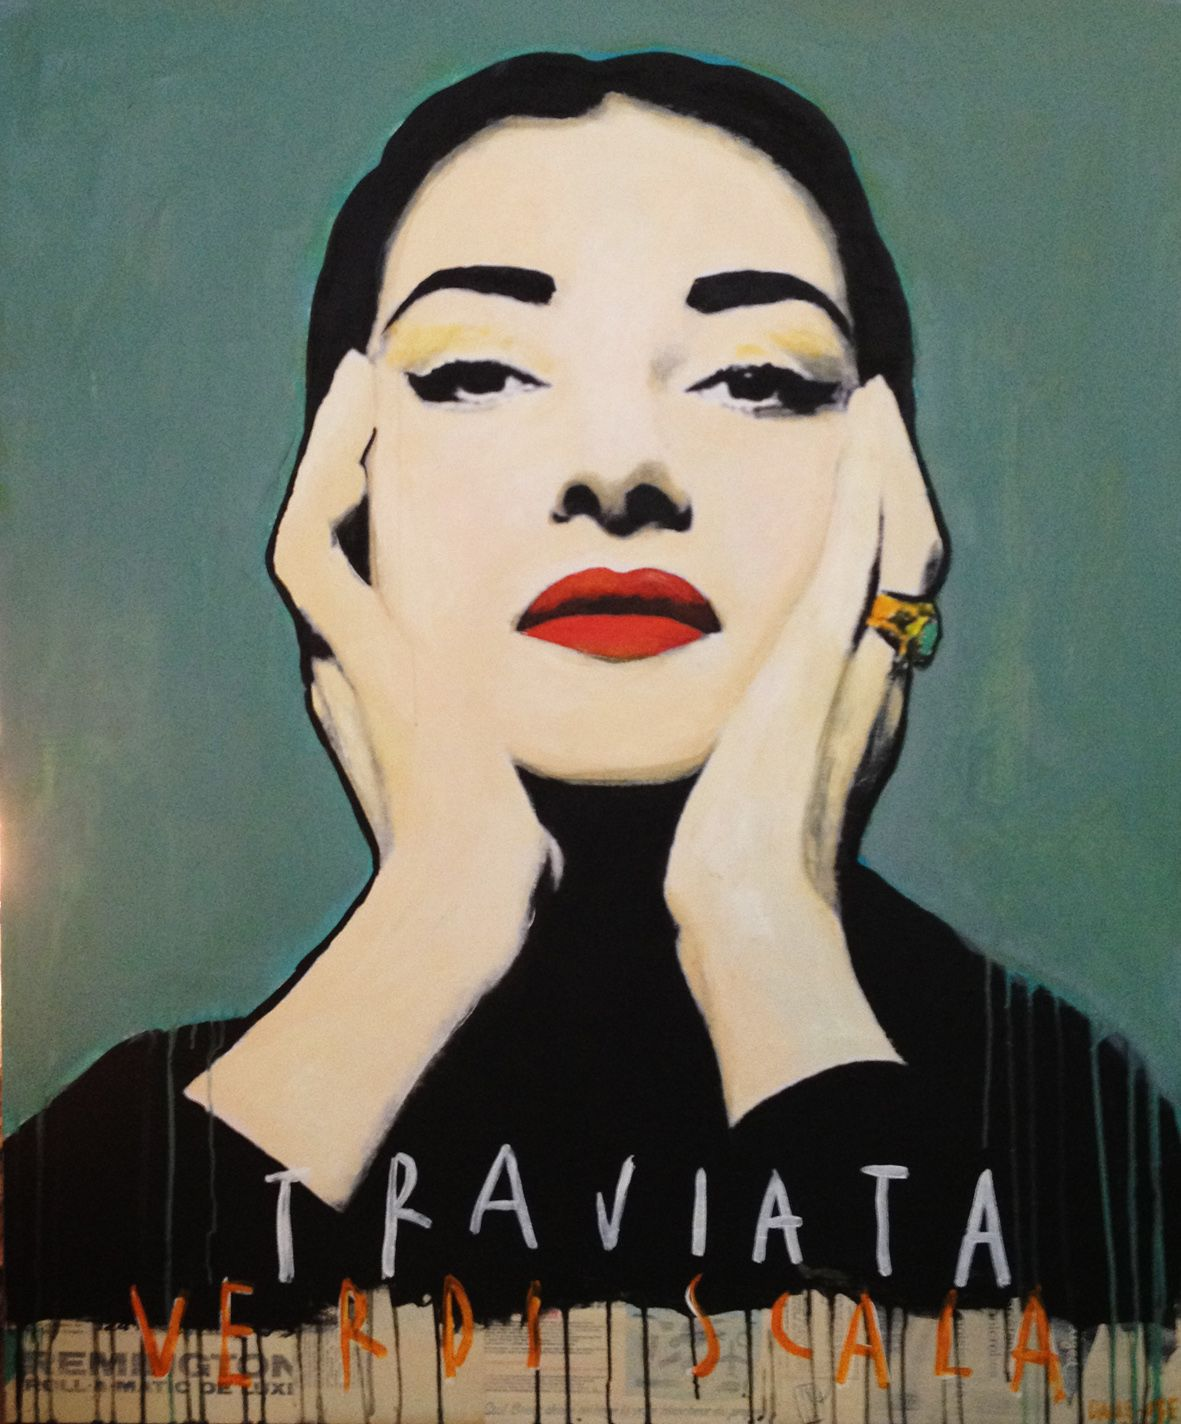 """CALLAS, 2013"" by Corinne Dalle Ore - Mixed media on canvas #Italia #Art #Triviata"